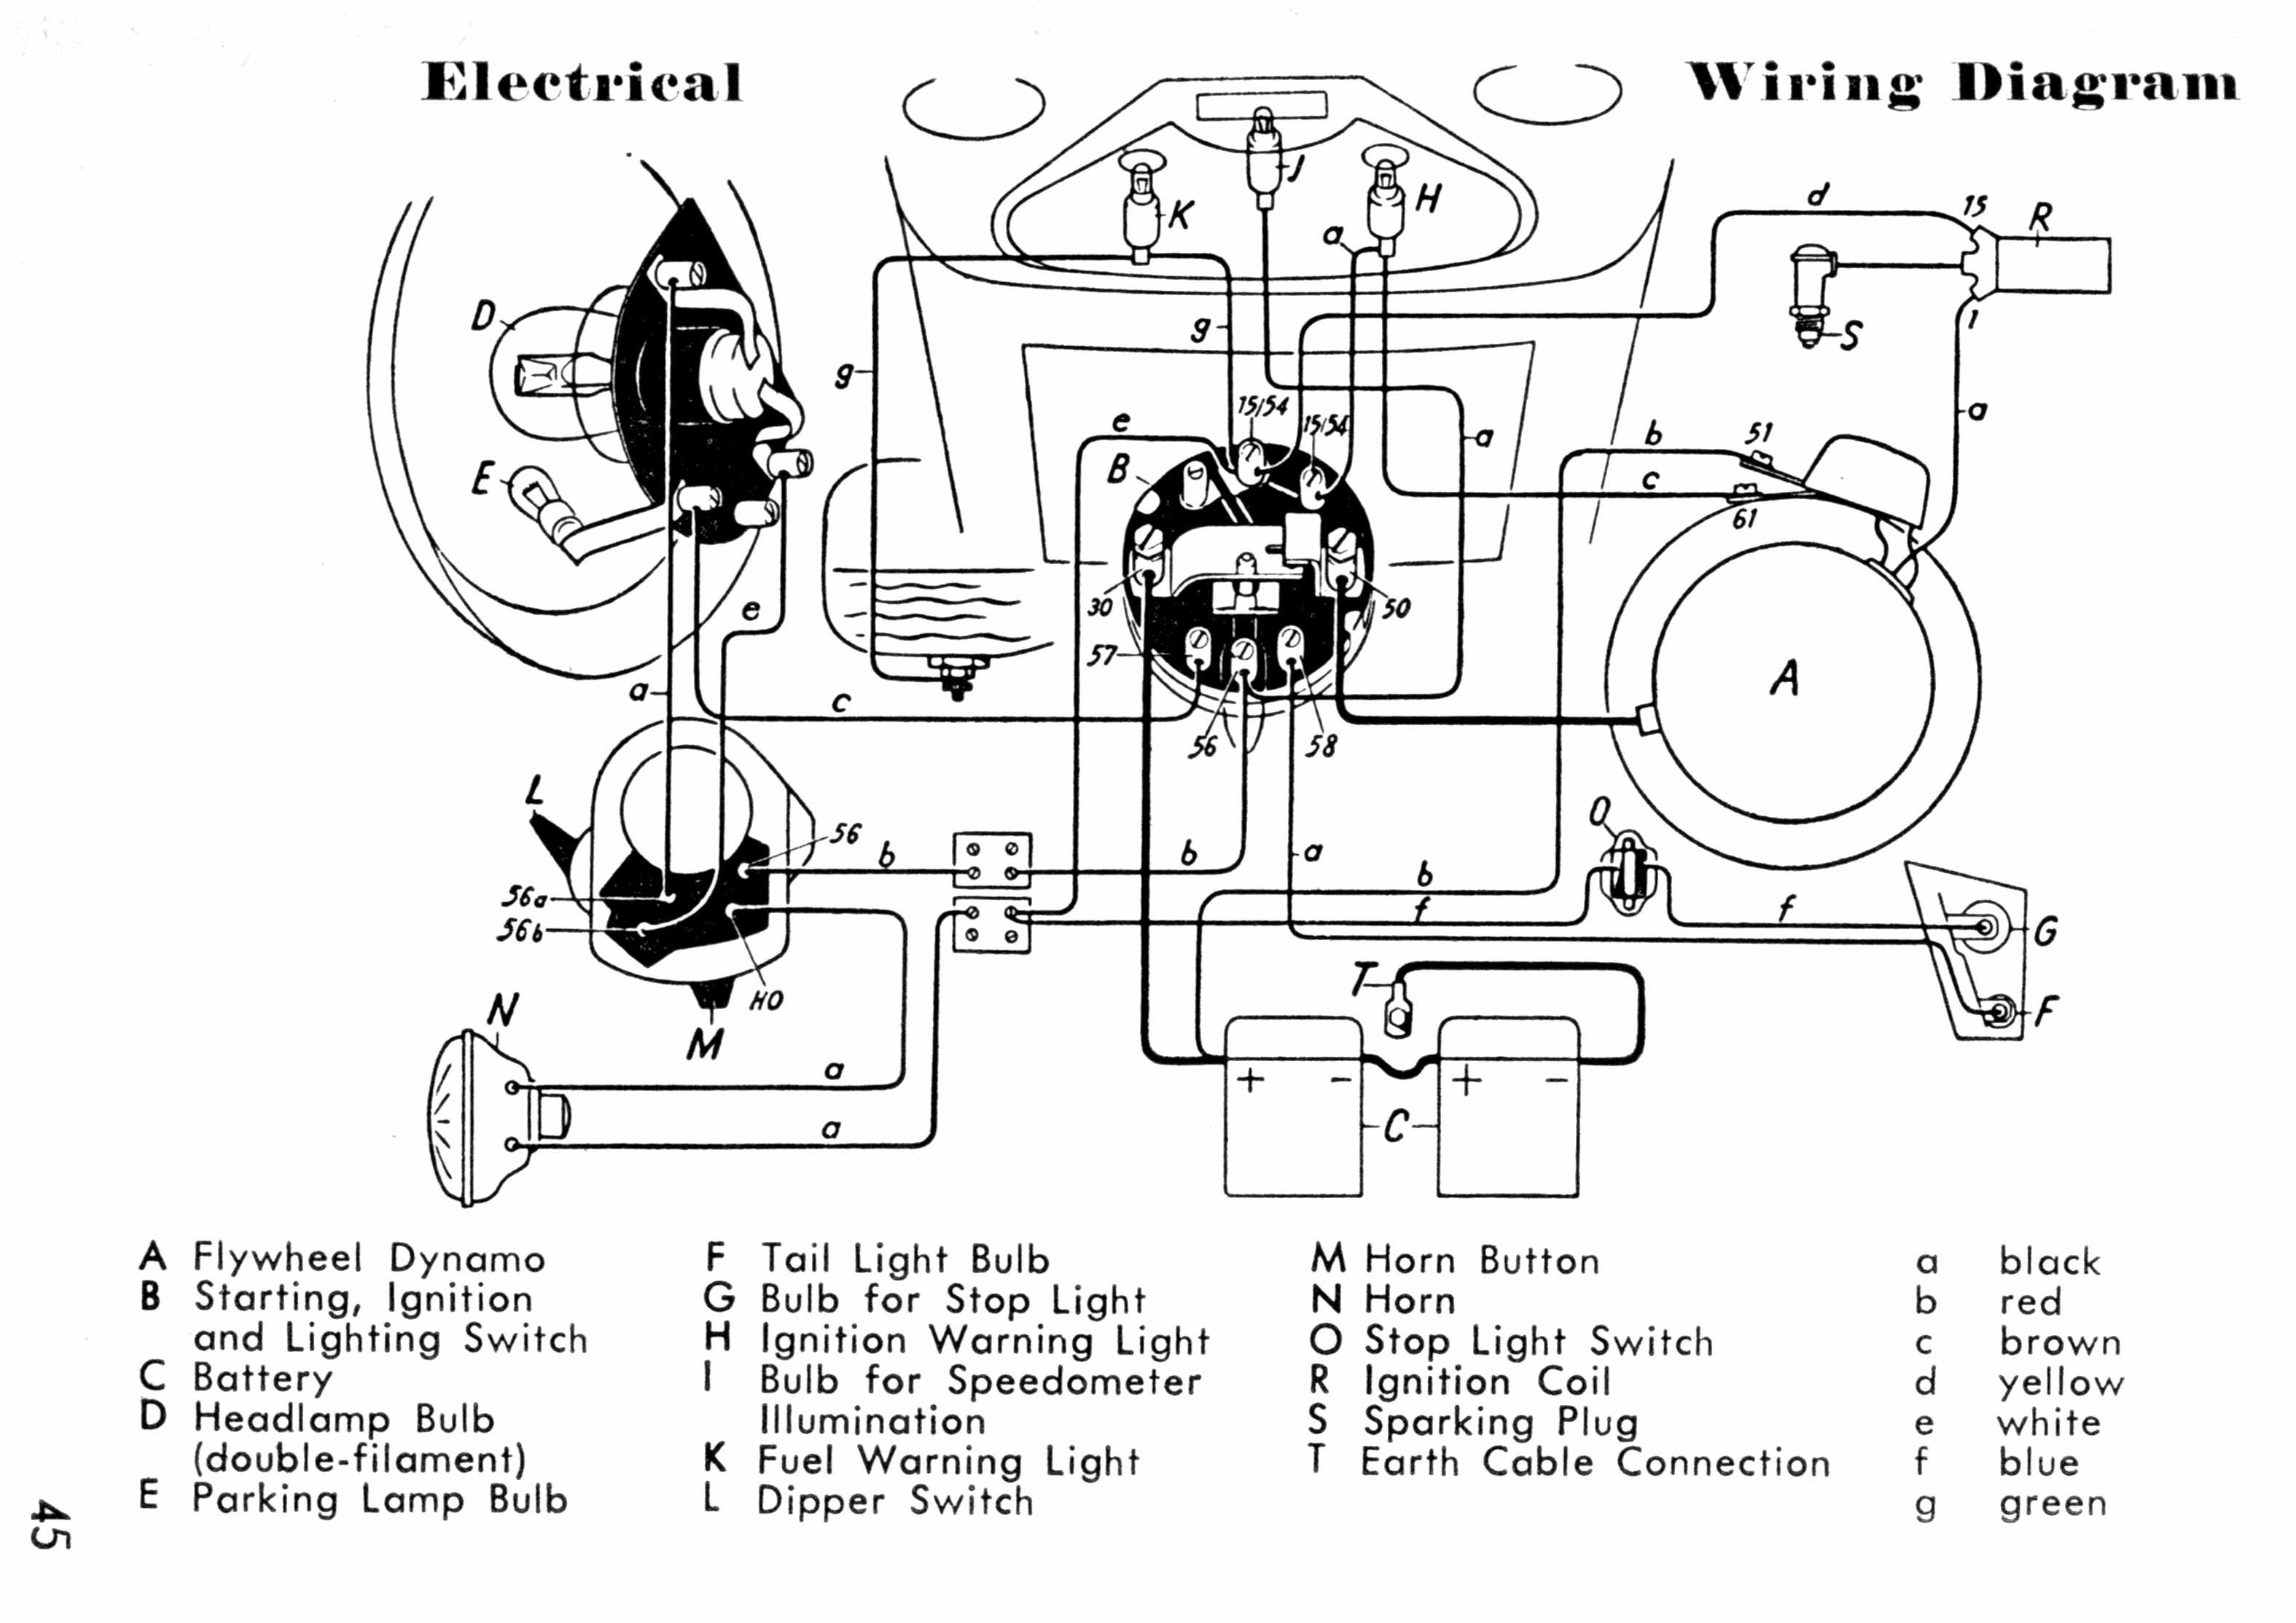 3ee73df4e7463c417fc349eccfcaade4 schematic electric scooter wiring diagram closet pinterest scooter ignition wiring diagram at alyssarenee.co